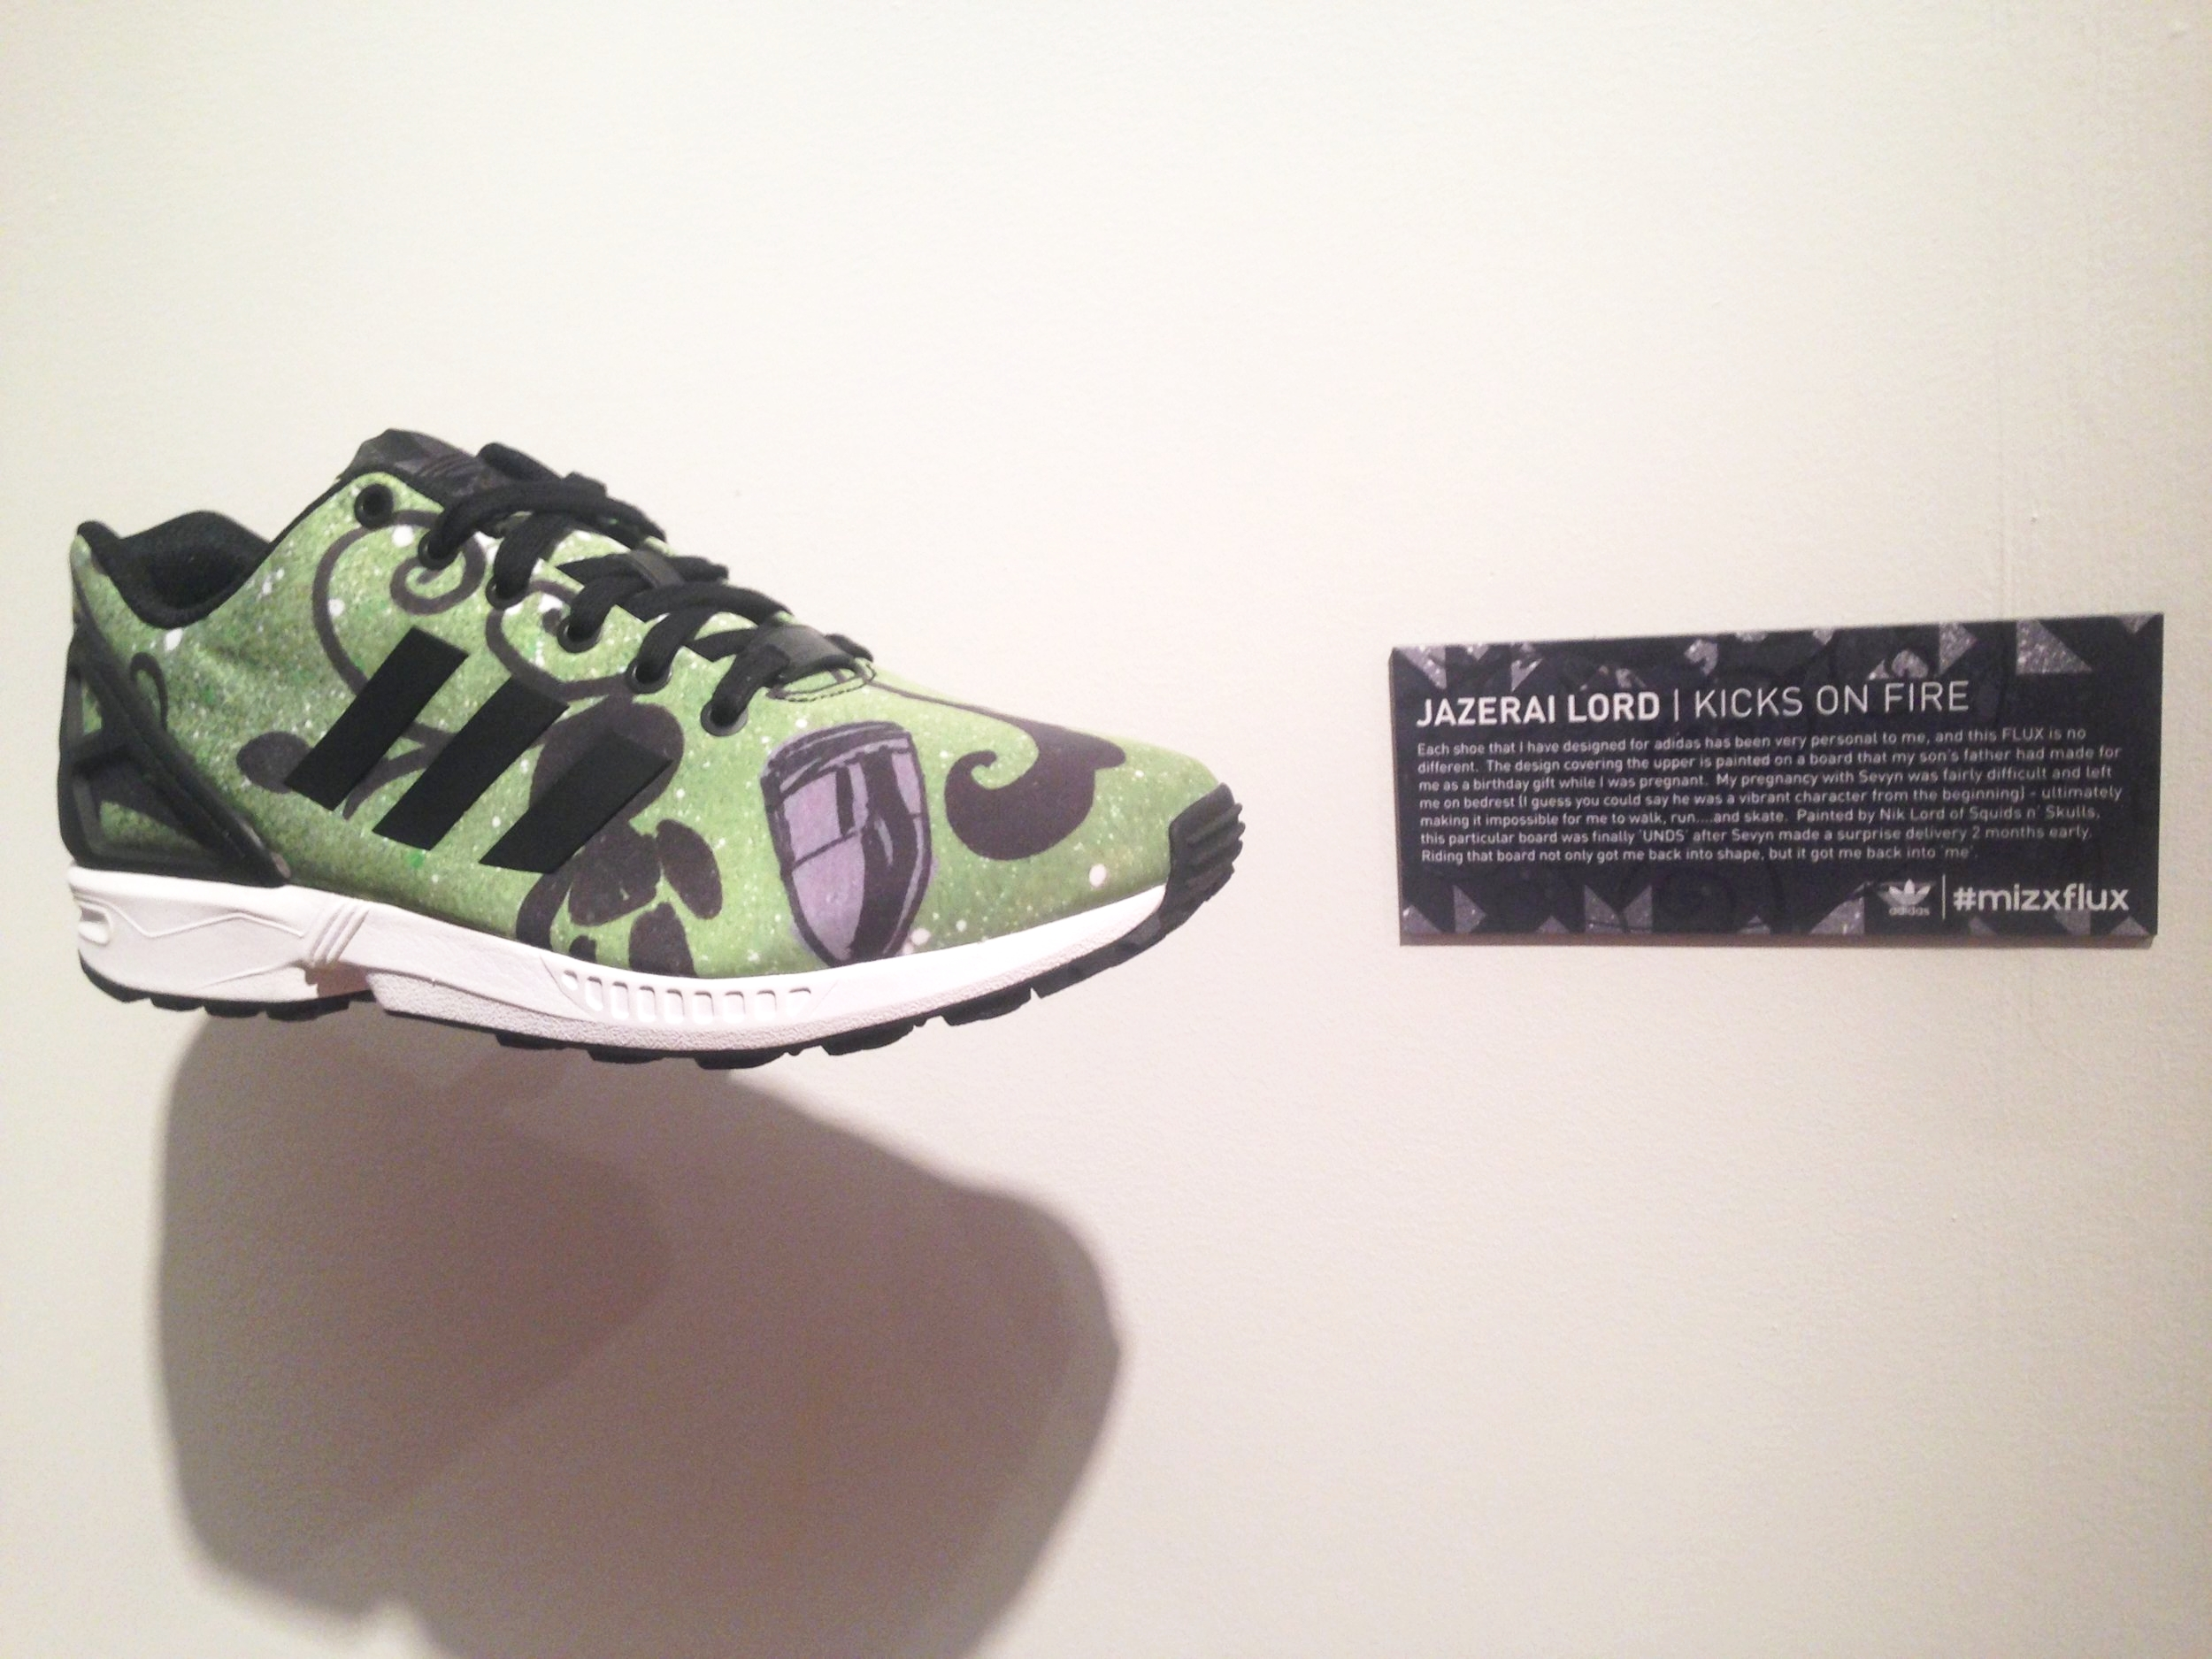 #mizxflux on Wooster St. - I worked with Wex and my ex brother-in-law on designing this ZX FLUX for an adidas exhibit on Wooster St.